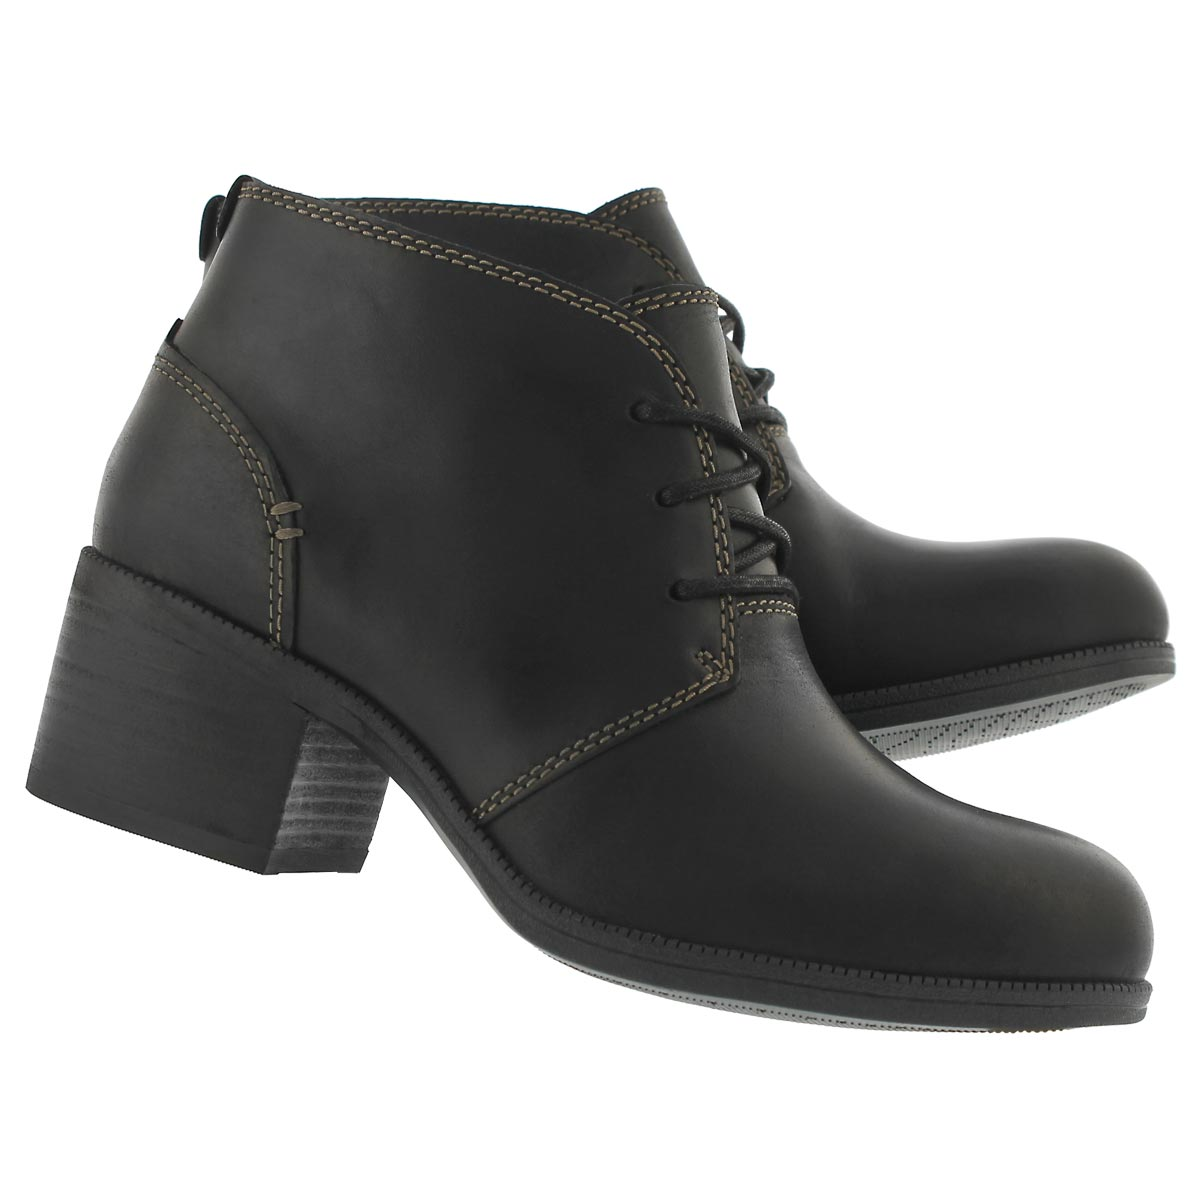 Lds Maypearl Flora blk lace up bootie